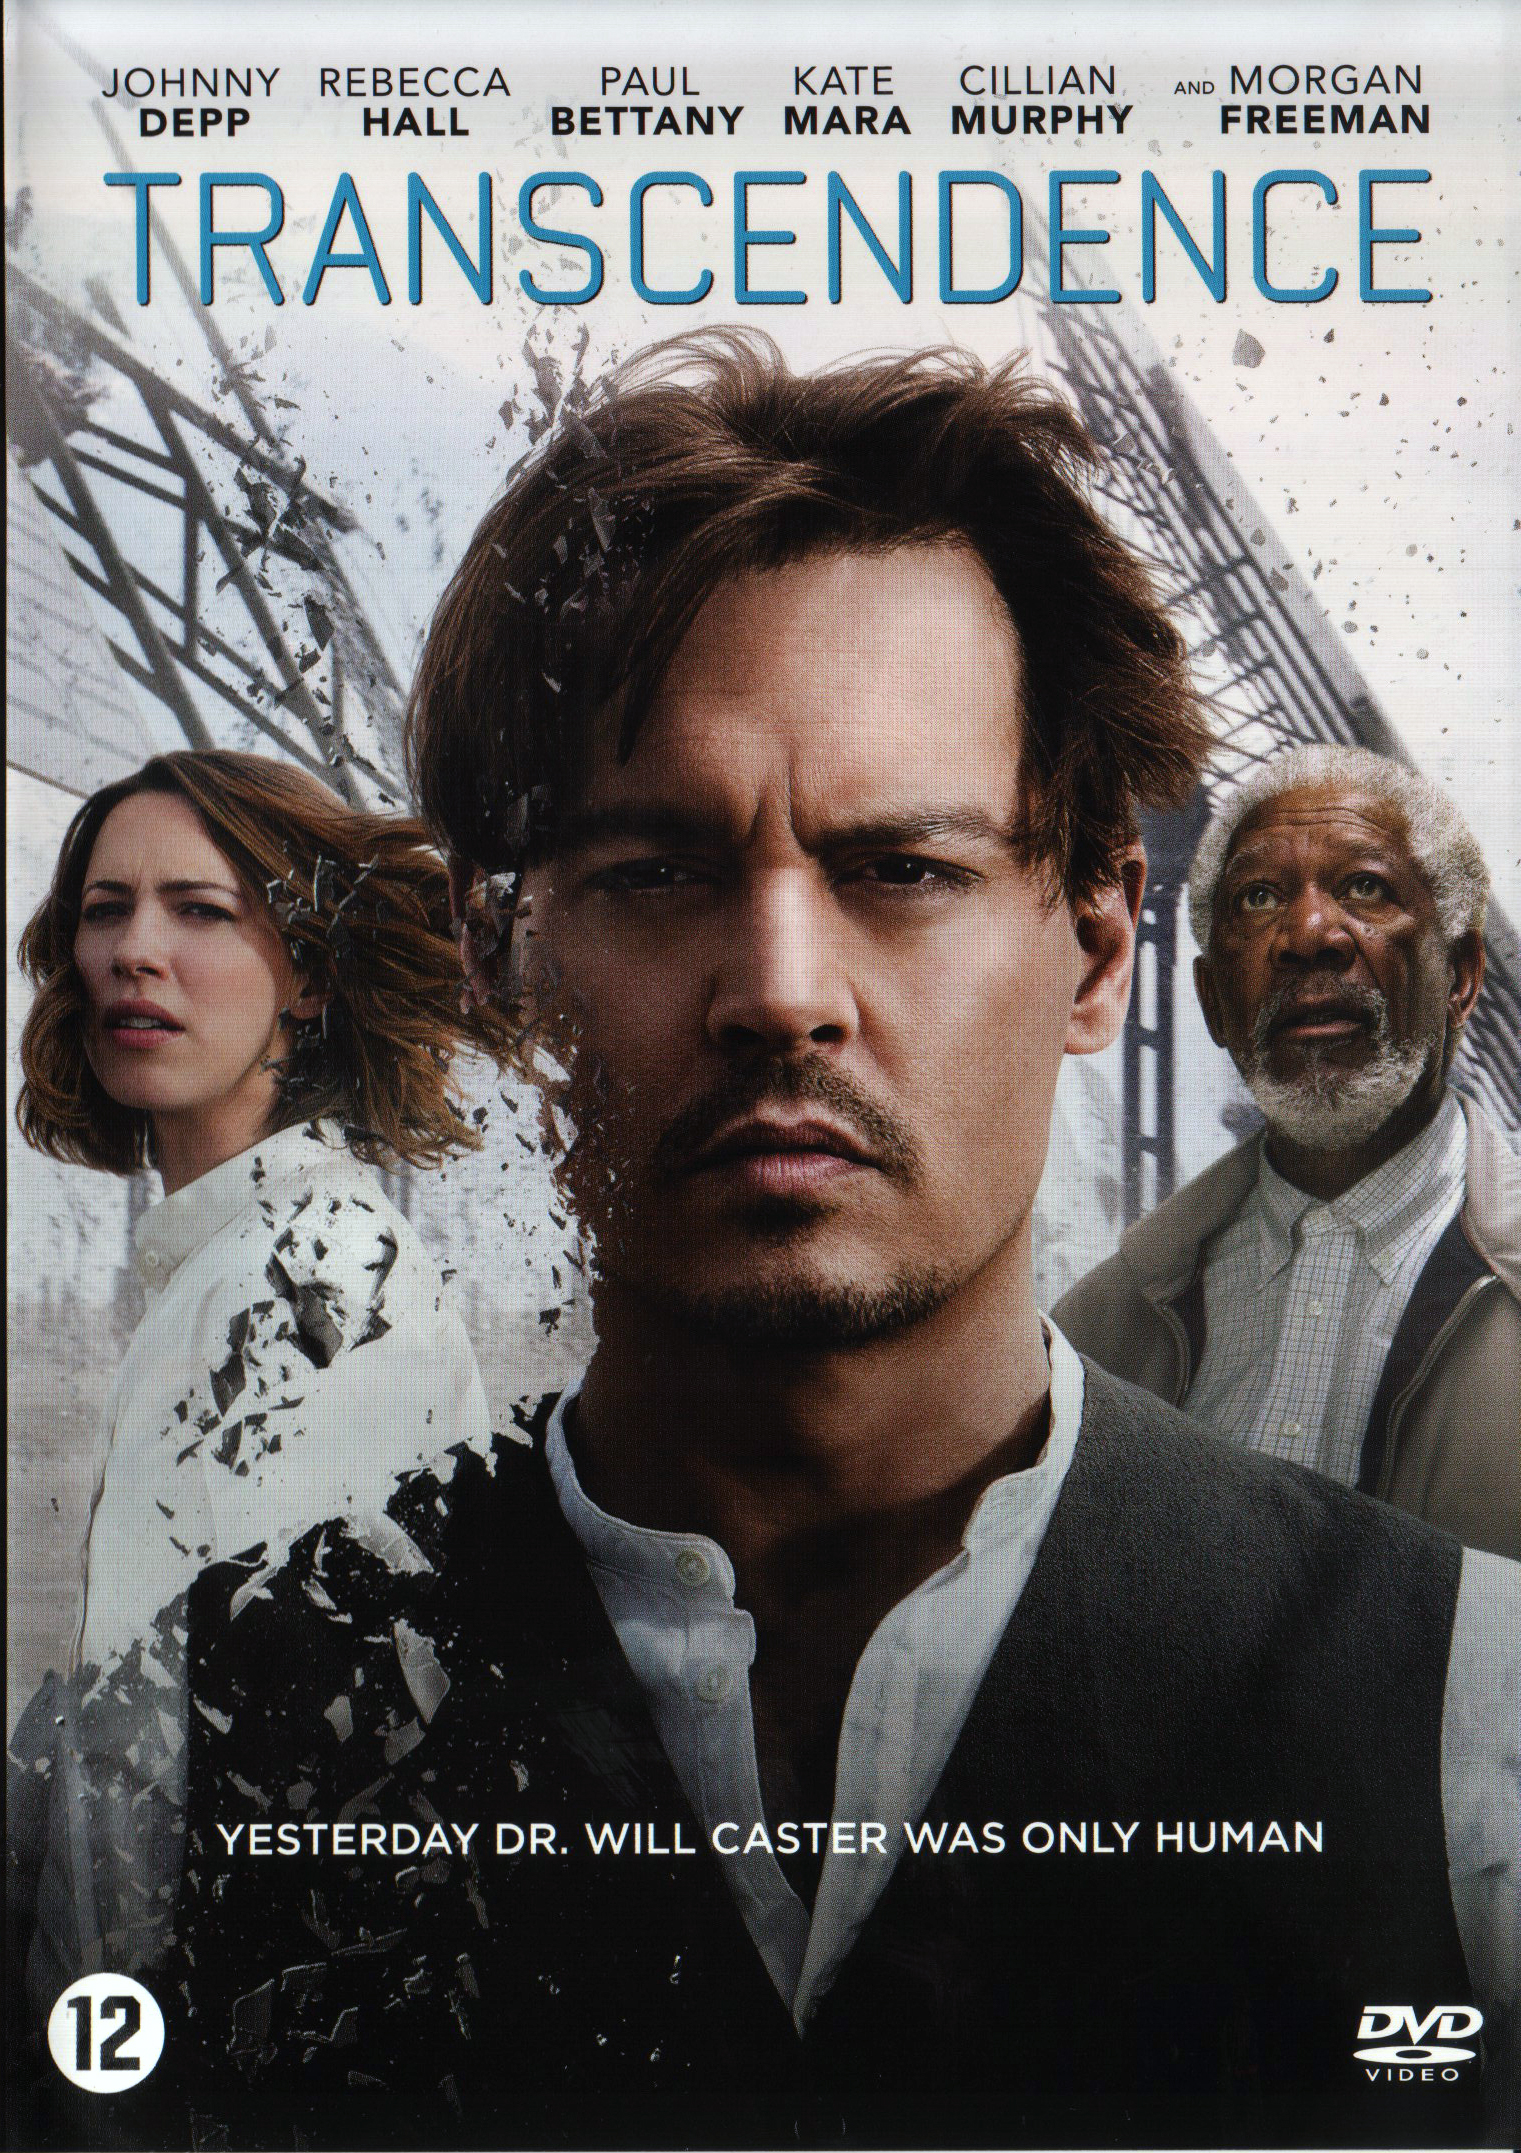 Inception (2010)   Movie Poster and DVD Cover Art   Transcendence Dvd Cover Art